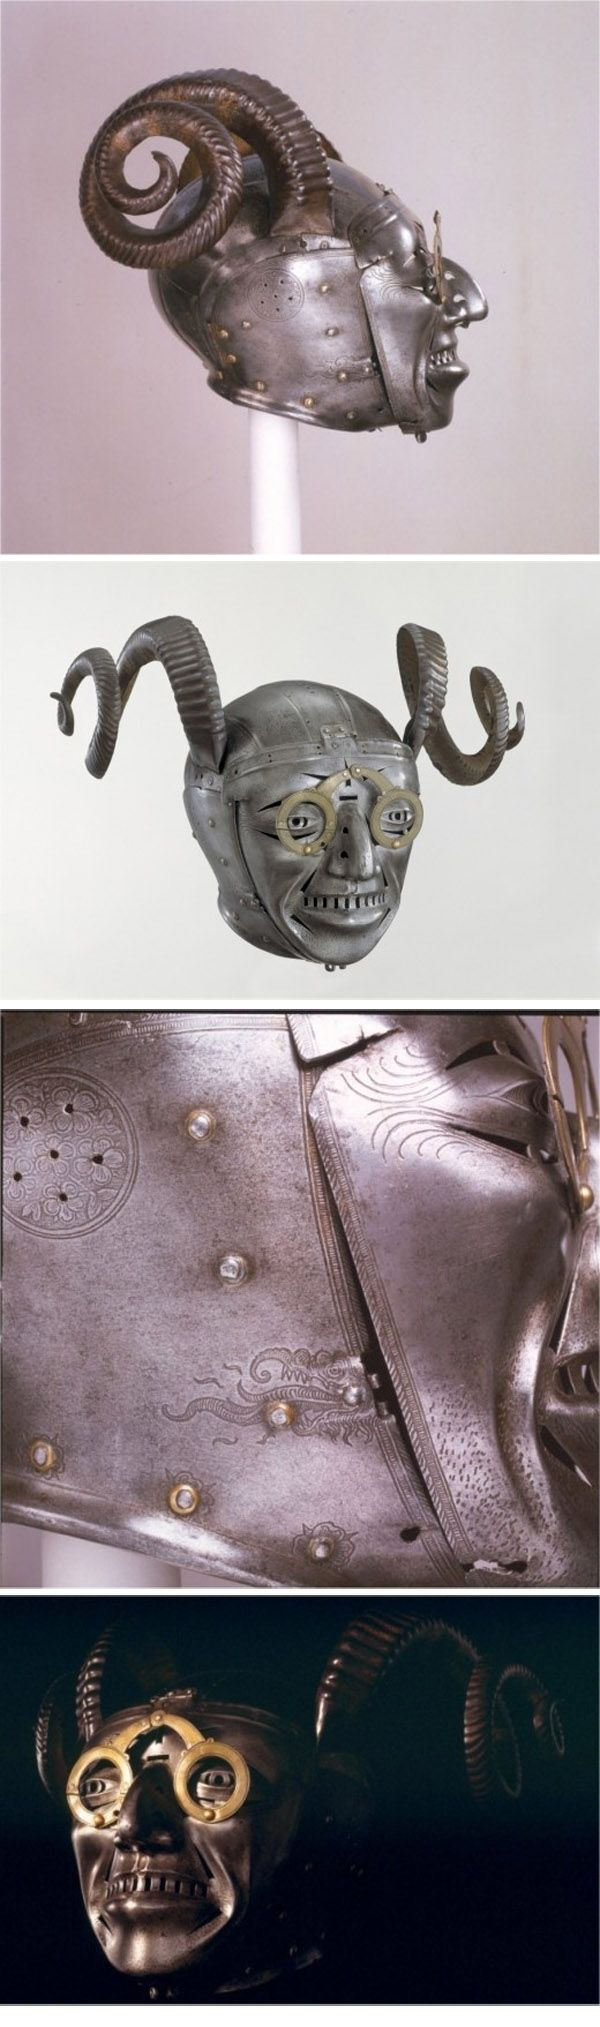 This is kinda crazy~  HENRY VIII'S HORNED HELMET, 1500S  ::  Made by Konrad Seusenhofer,Innsbruck, Austria c. 1511-14.  Part of an armour presented by the Holy Roman Emperor, Maximilian I, to Henry VIII. ( http://www.retronaut.co/2011/07/the-horned-helmet-of-henry-viii/ )